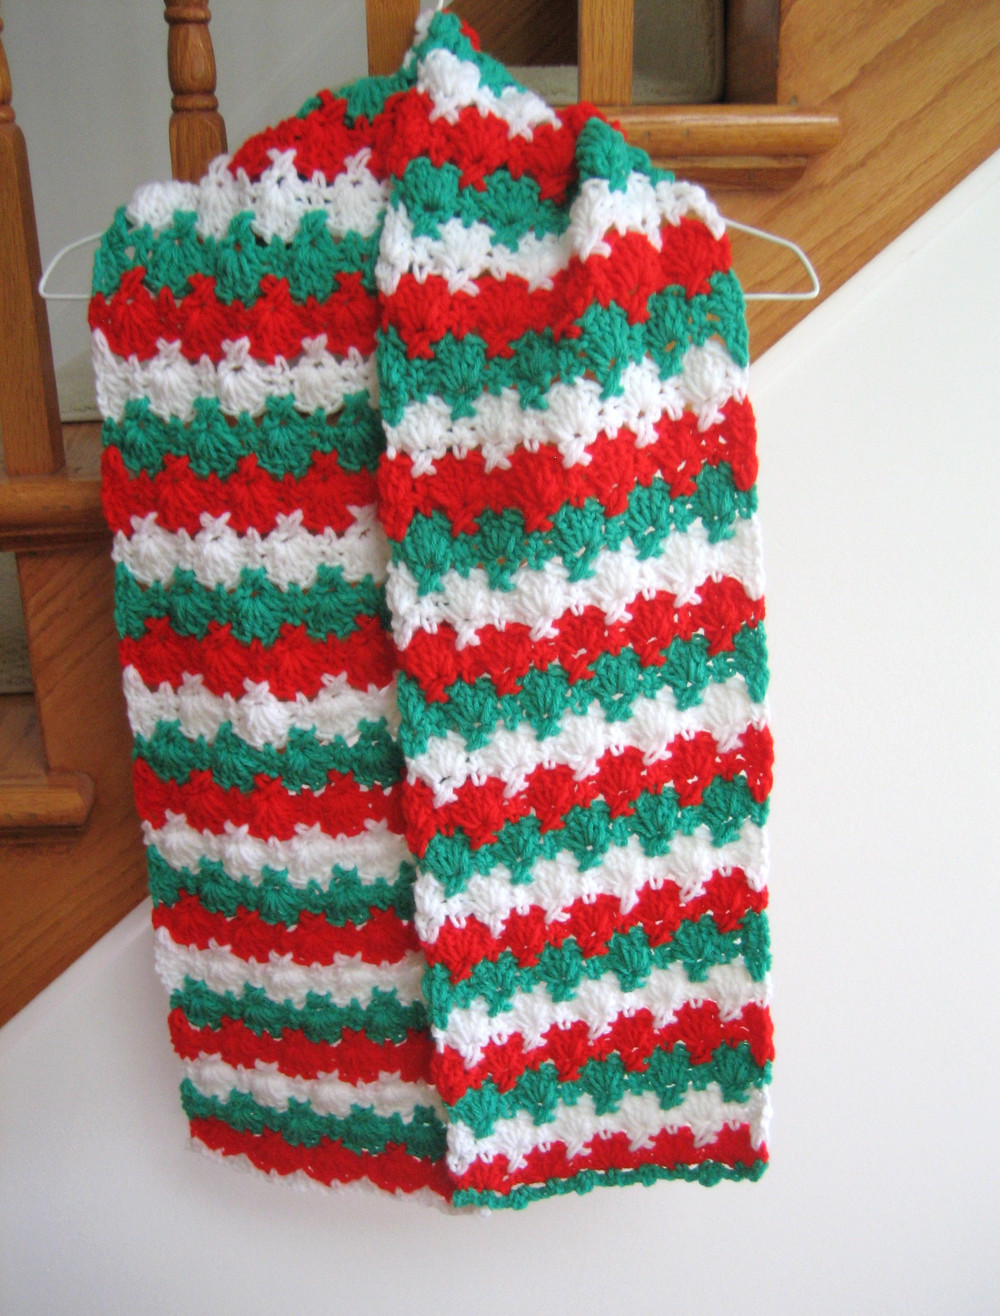 Holiday Criss Cross Crocheted Scarf Pattern  FaveCraftscom